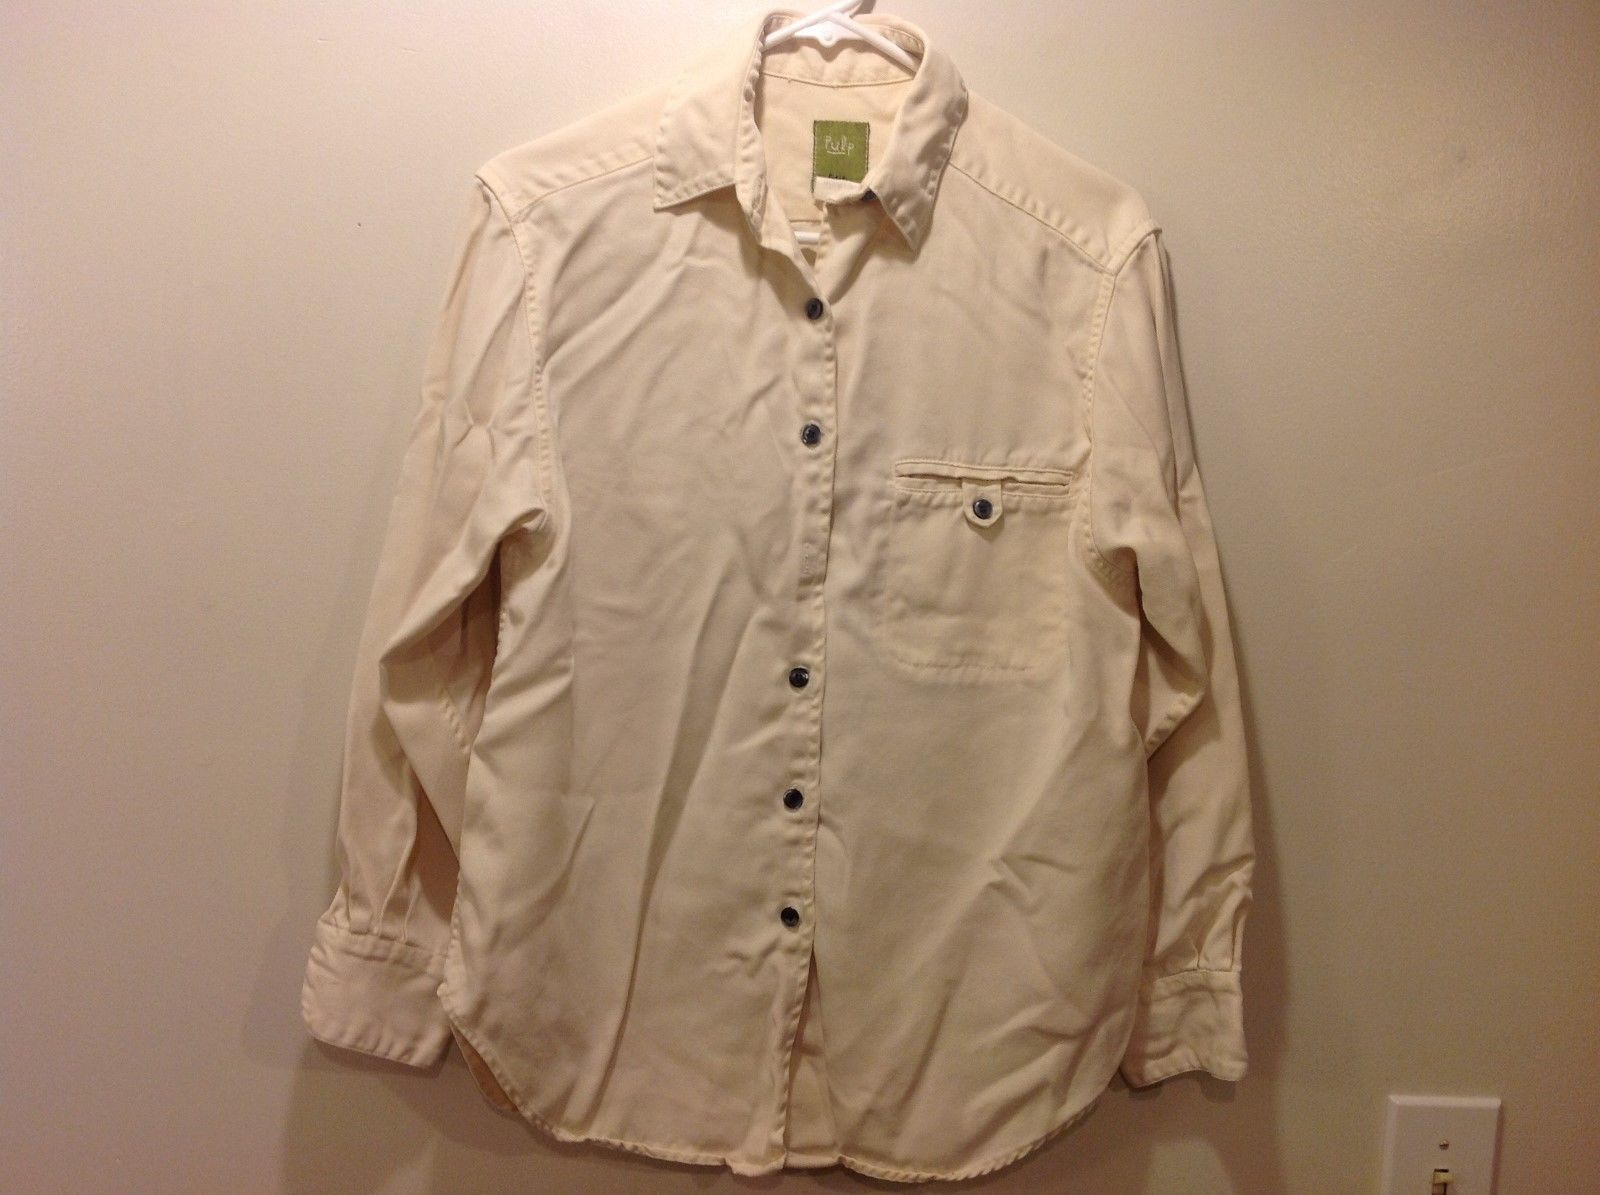 Pulp Long Sleeve Button Up Collared Sandy Colored Shirt Sz PL